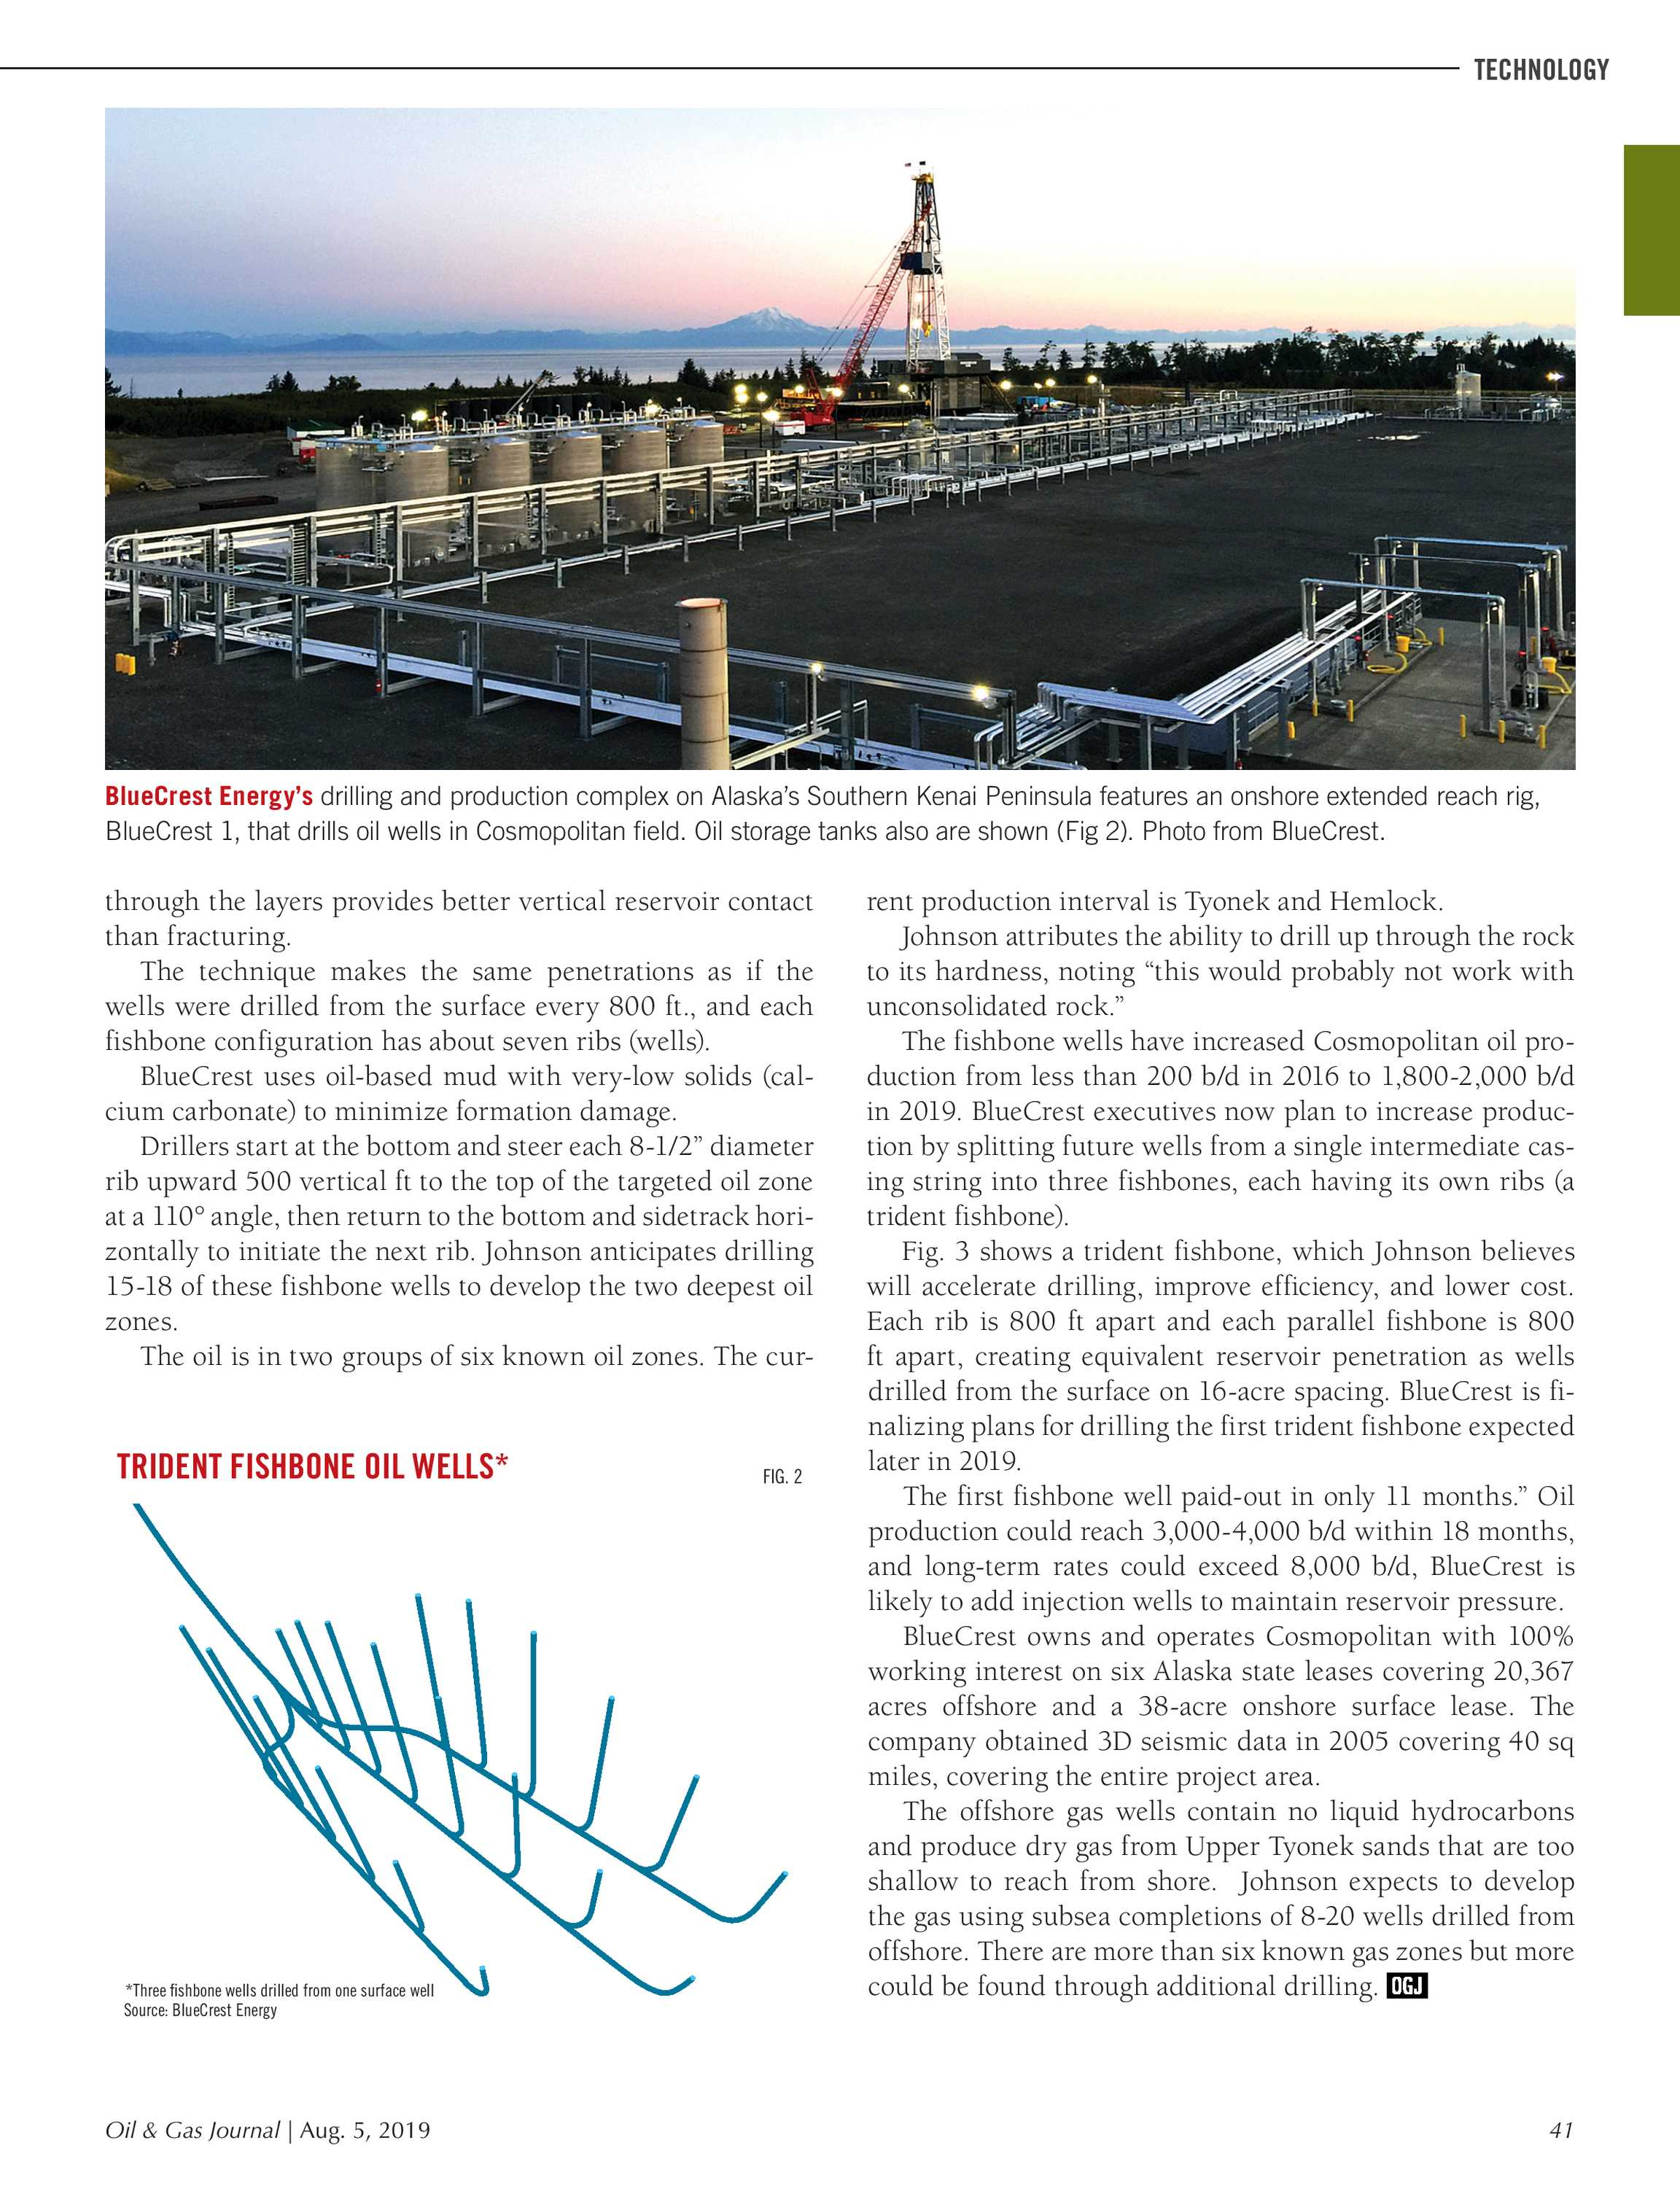 Oil & Gas Journal - August 5, 2019 - page 42